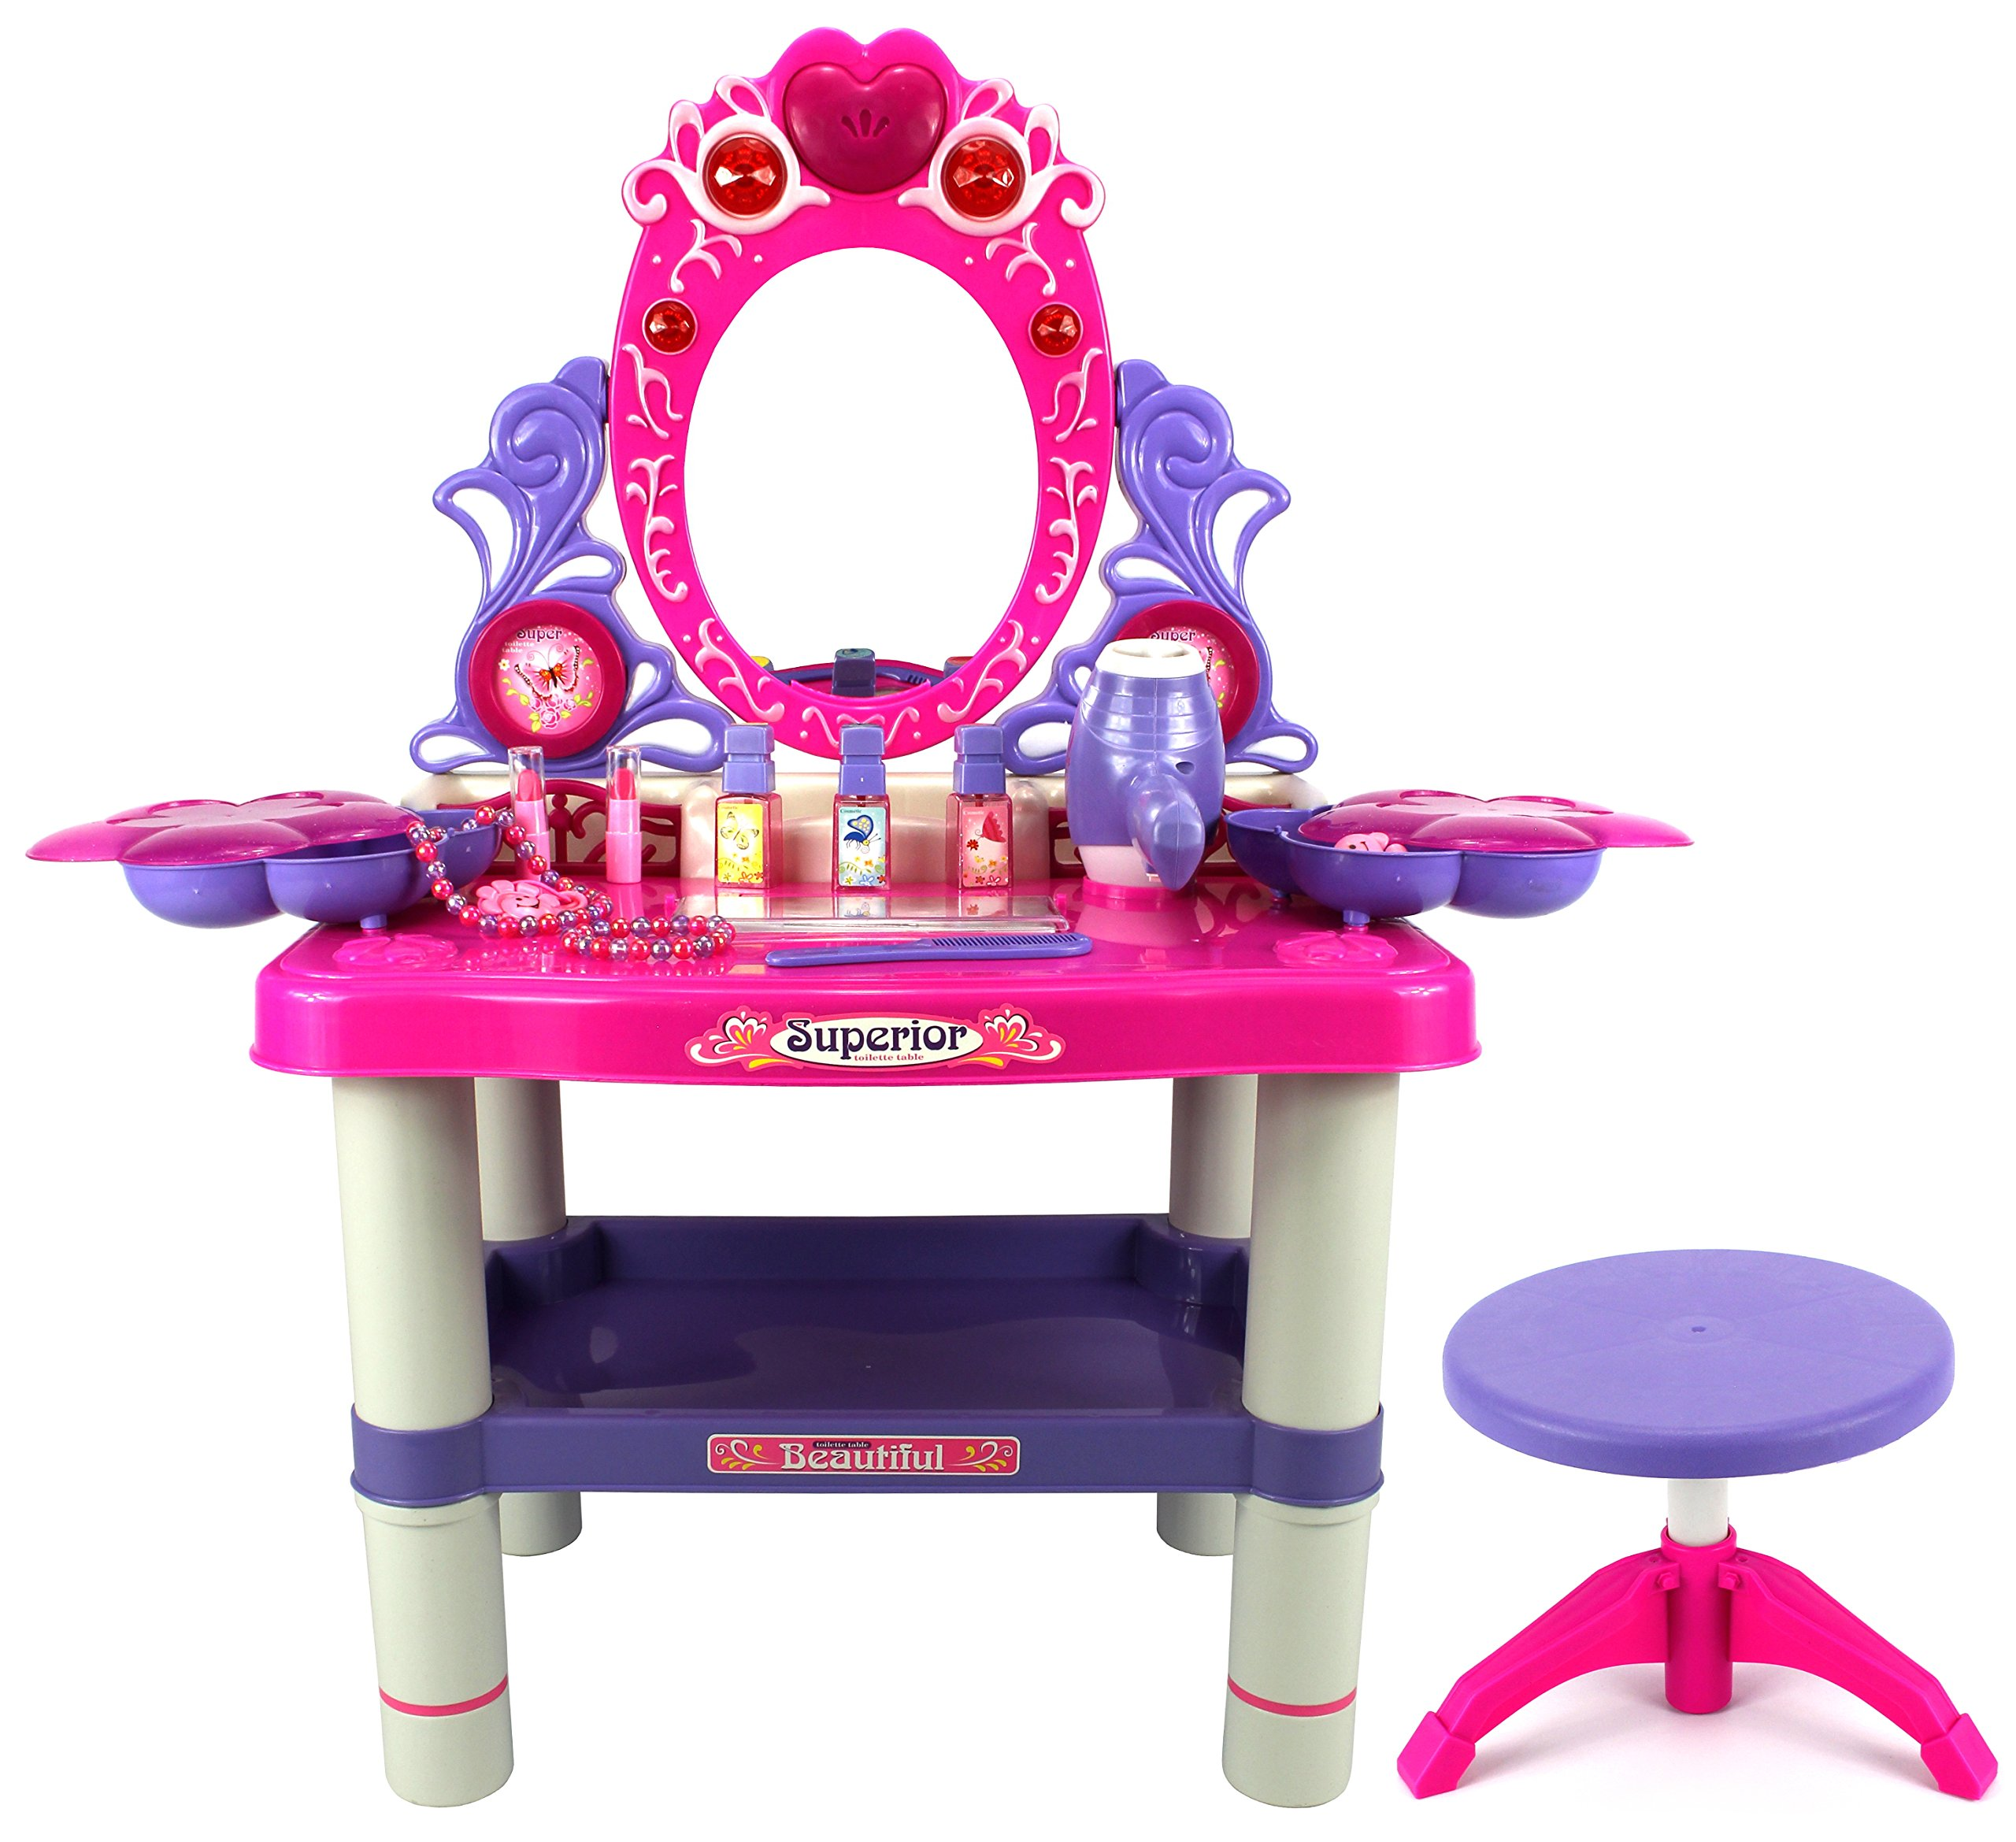 Velocity Toys Beauty Queen Dresser Pretend Play Battery Operated Toy Beauty Mirror Vanity Play Set w/ Flashing Lights, Music, Accessories by Velocity Toys